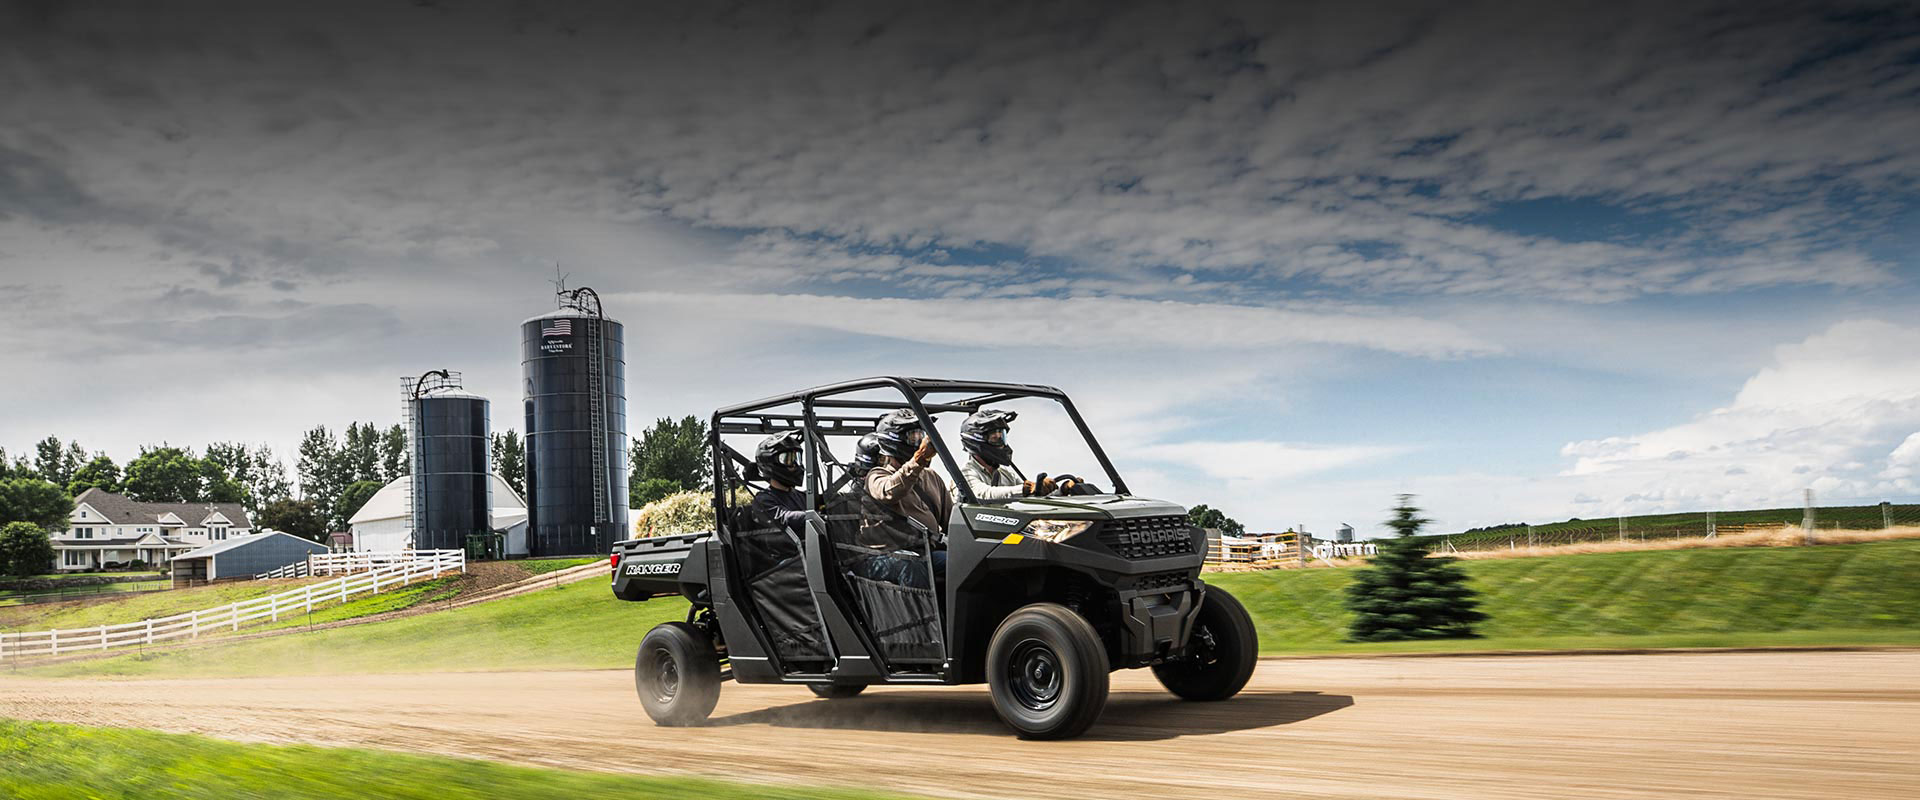 THE NEXT GENERATION OF THE WORLD'S BEST SELLING UTV